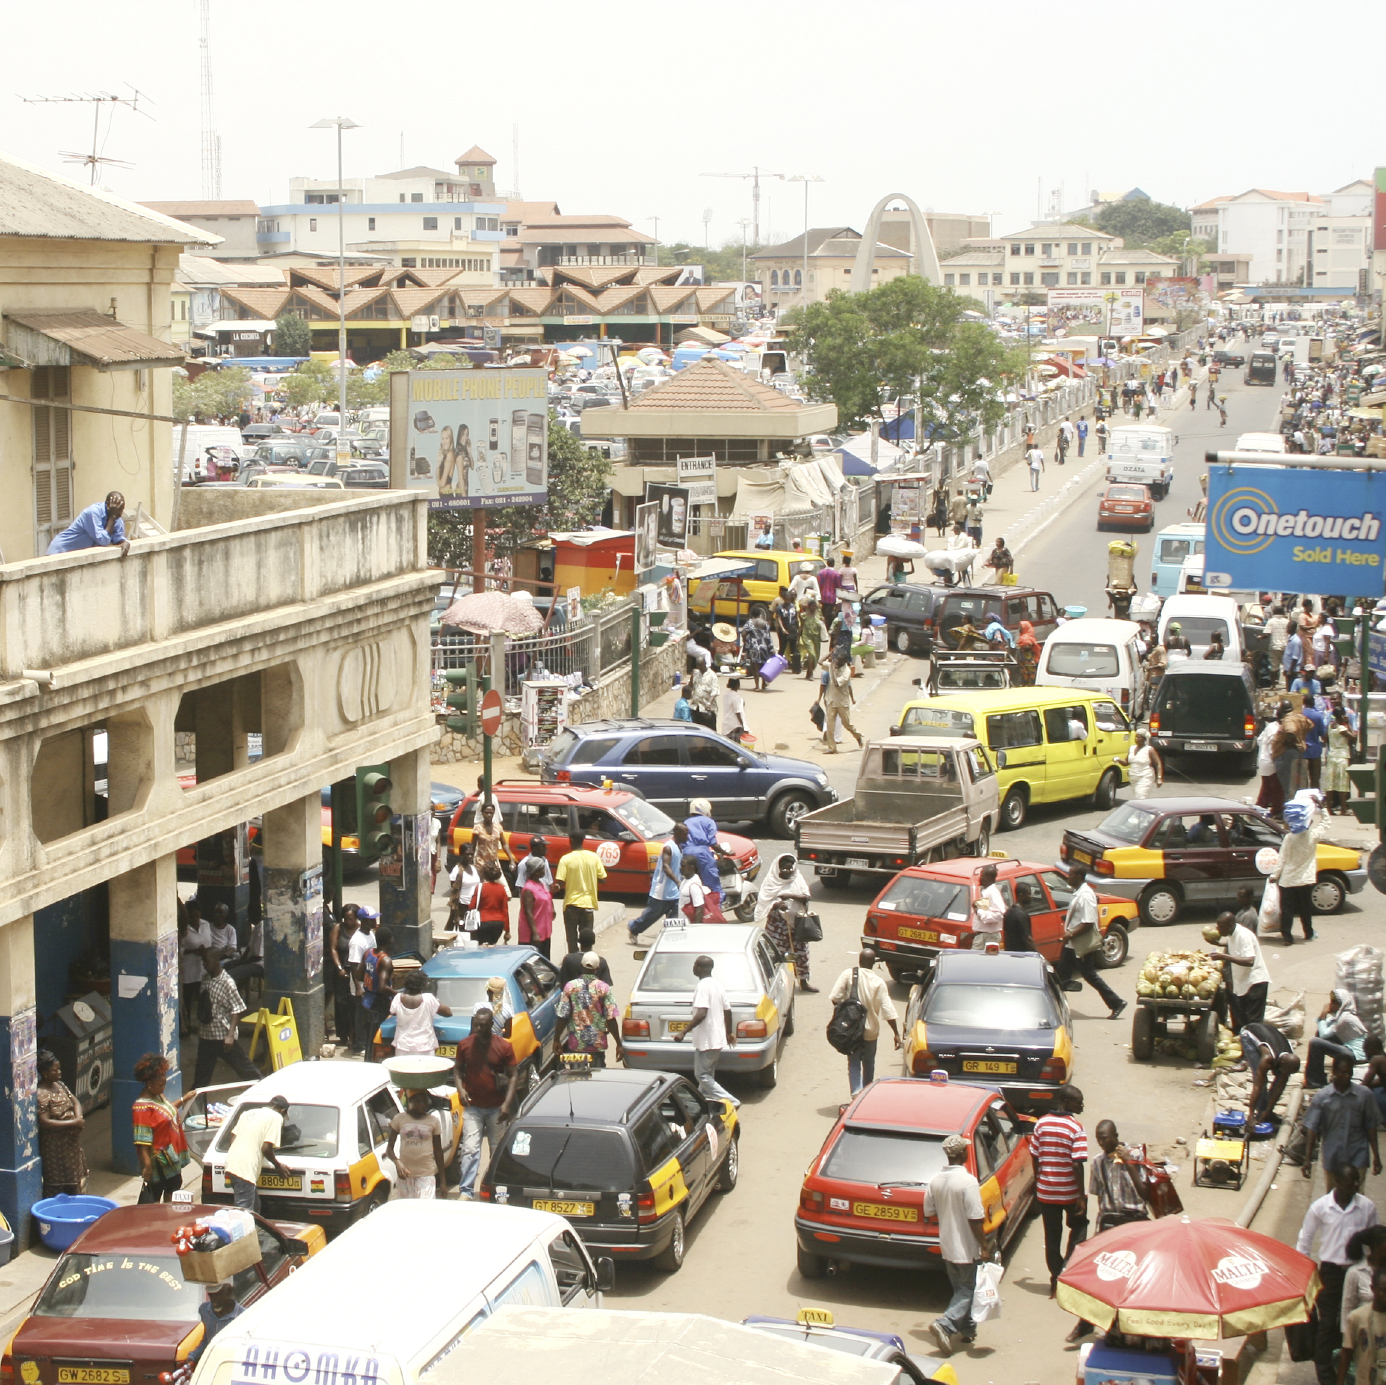 Congested traffic in Accra, Ghana. (stock image)